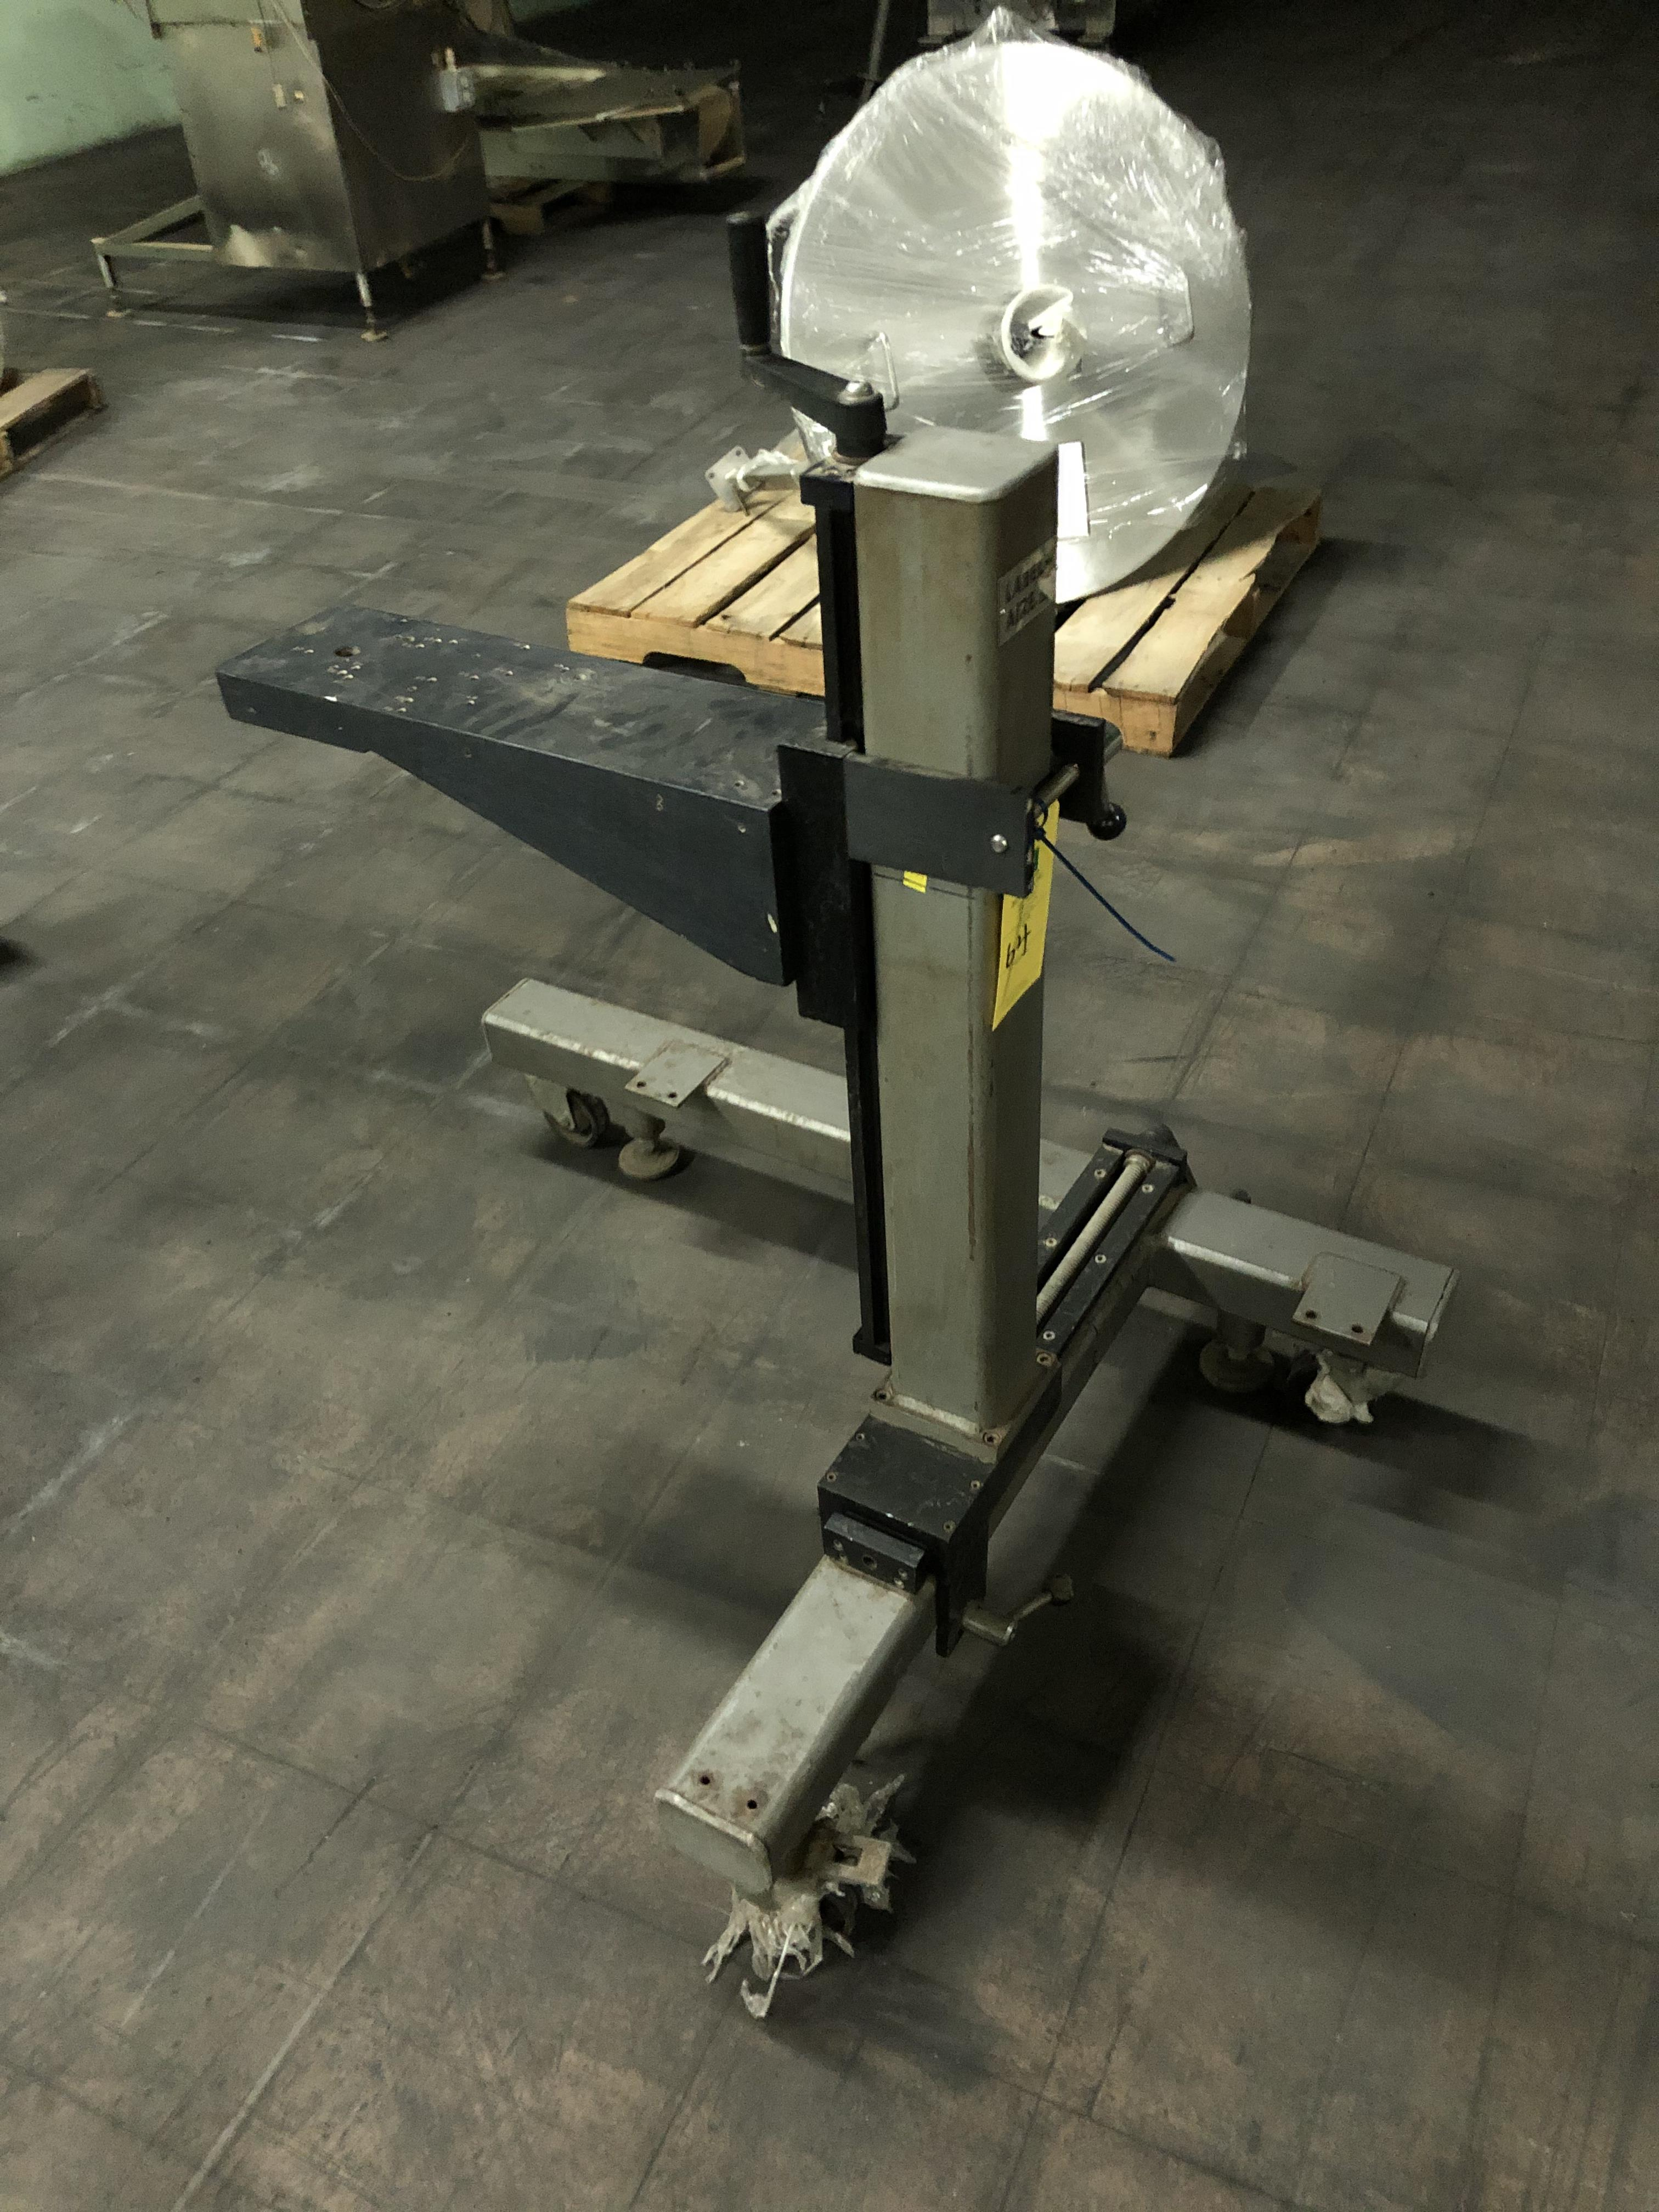 Label Aire Adjustable Stand Mounted on Casters, RIGGING FEE - $50 - Image 2 of 2